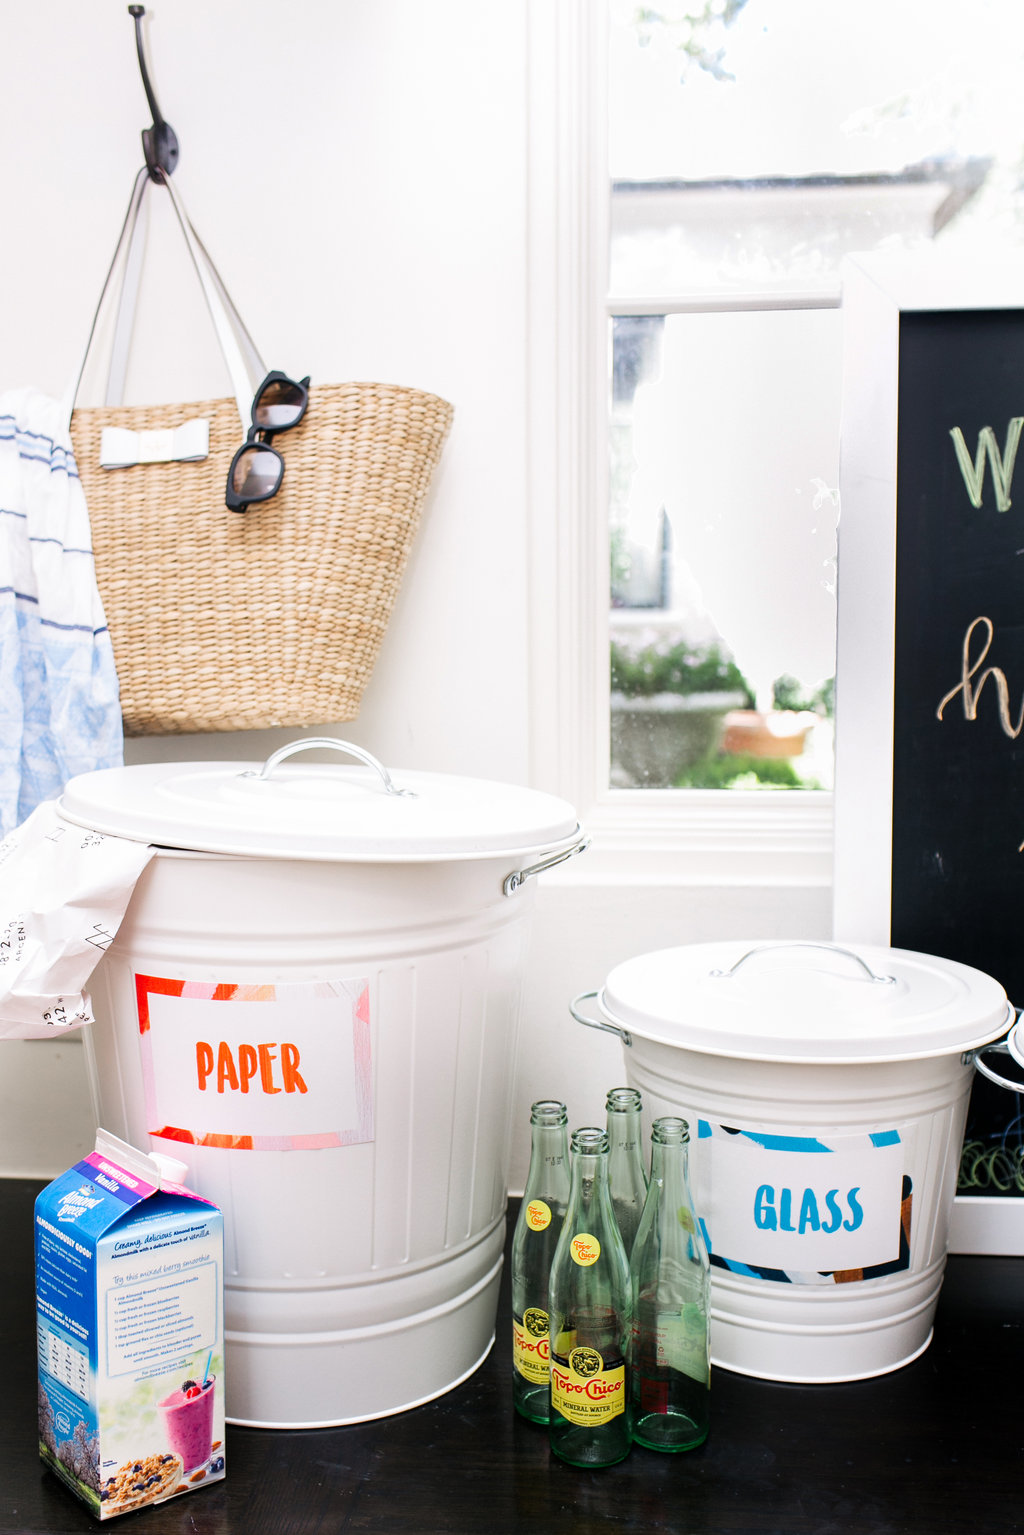 create your own cute recycling bins!